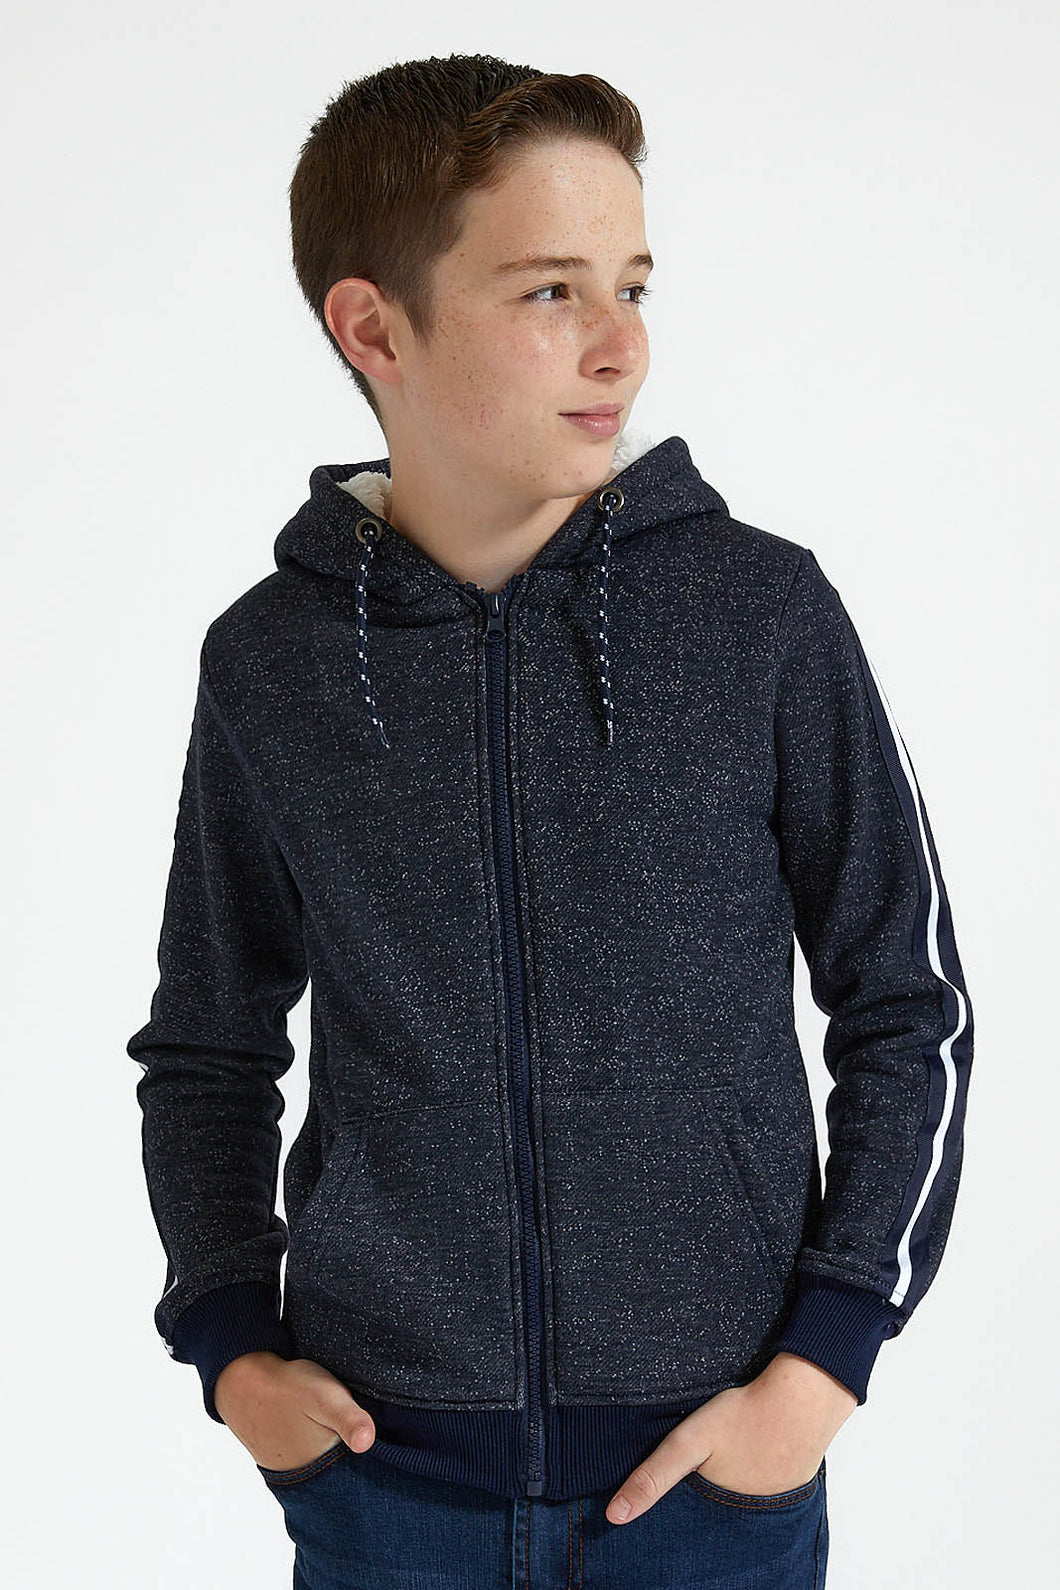 Navy/Grey Front Zip Hooded Sweatshirt